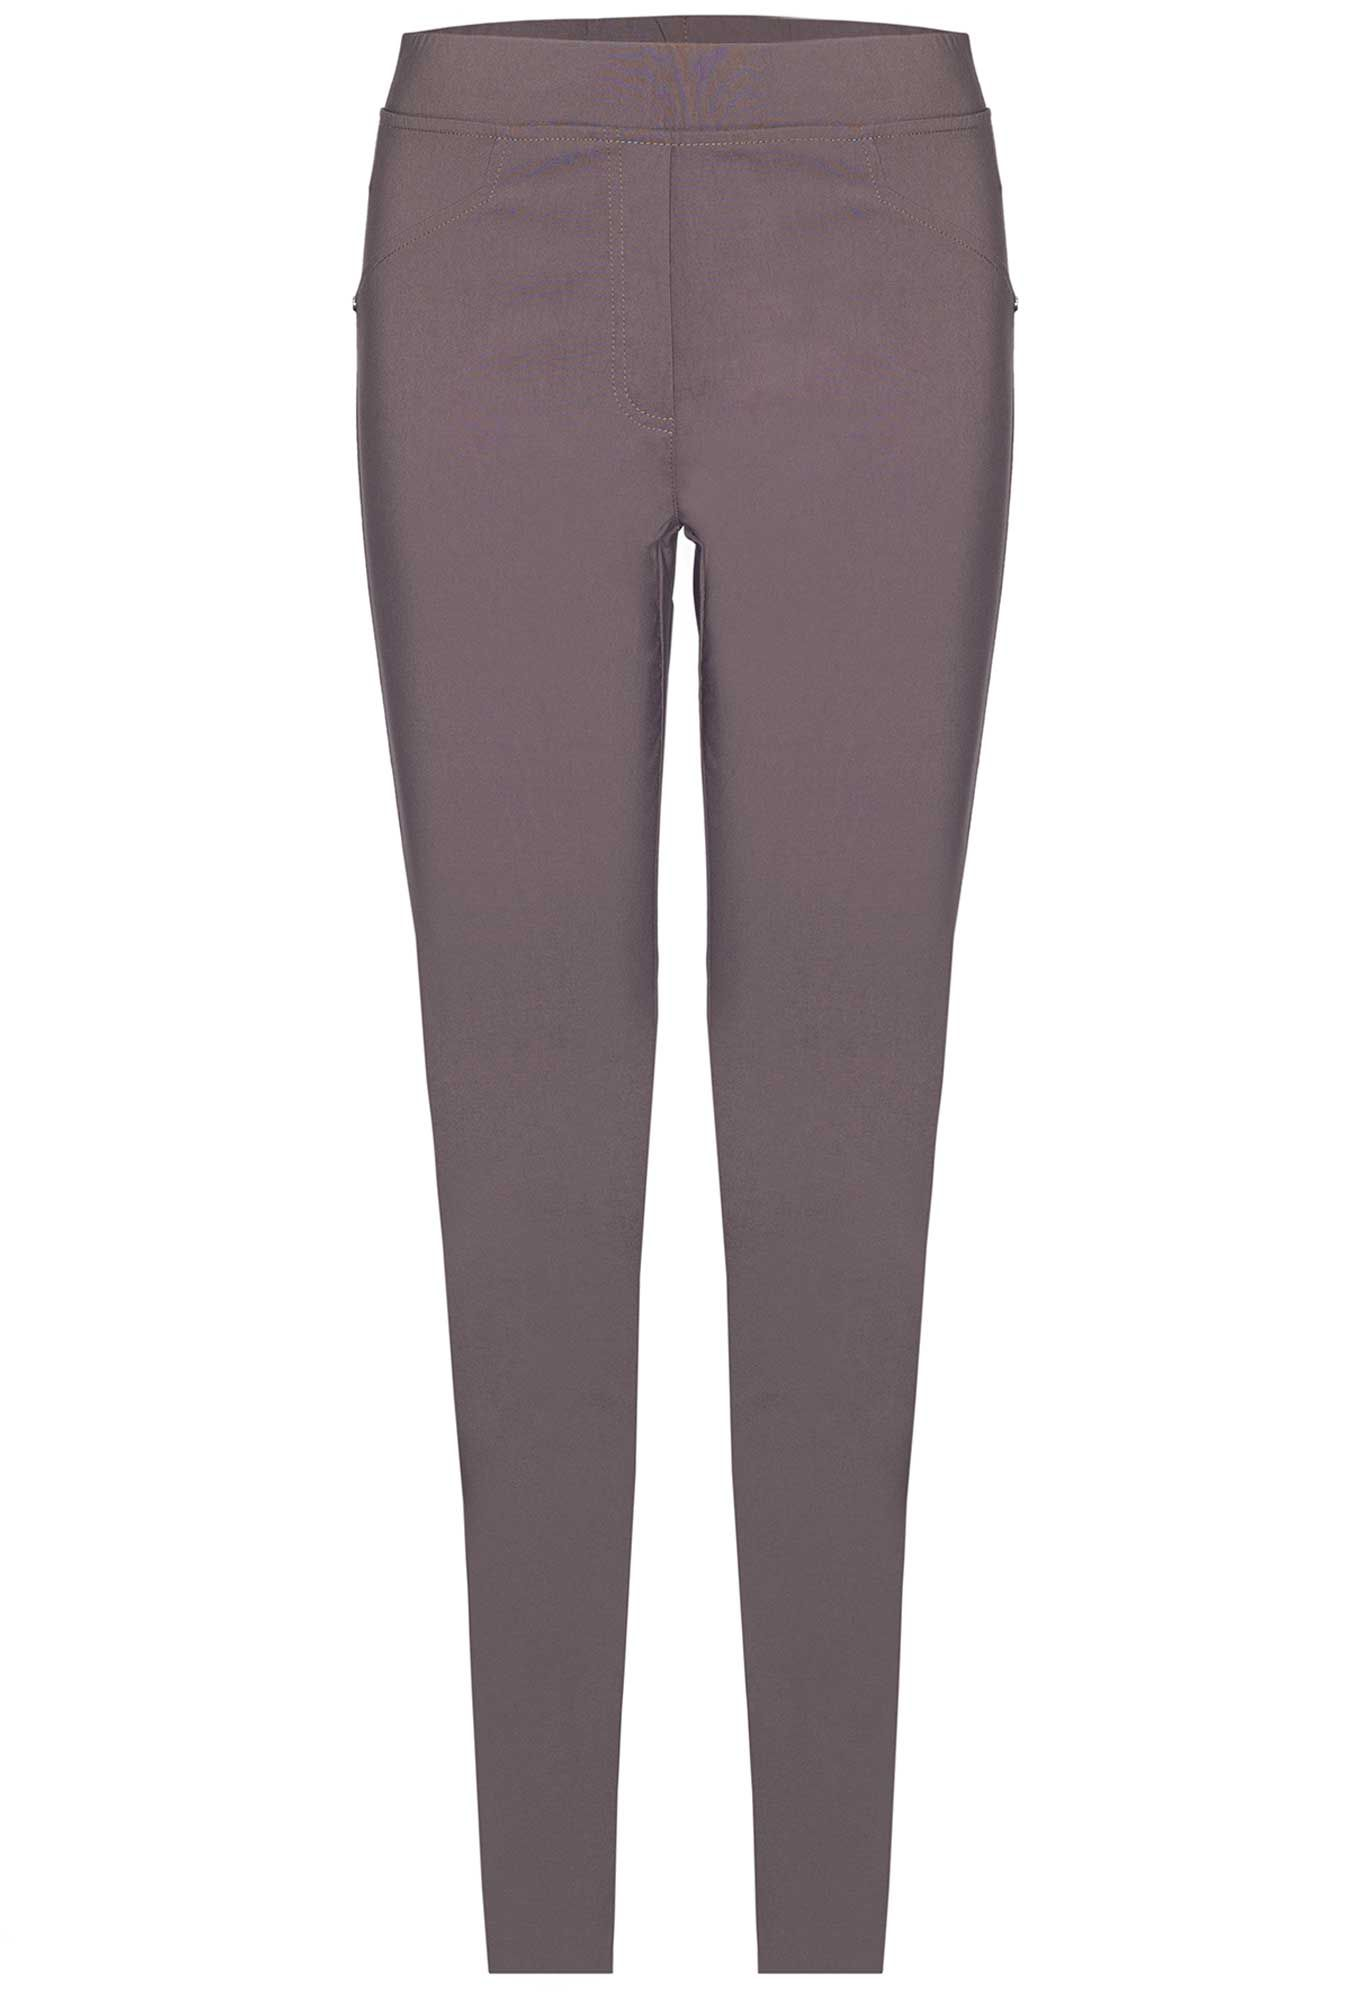 James Lakeland Plain Stretch Trousers, Mink